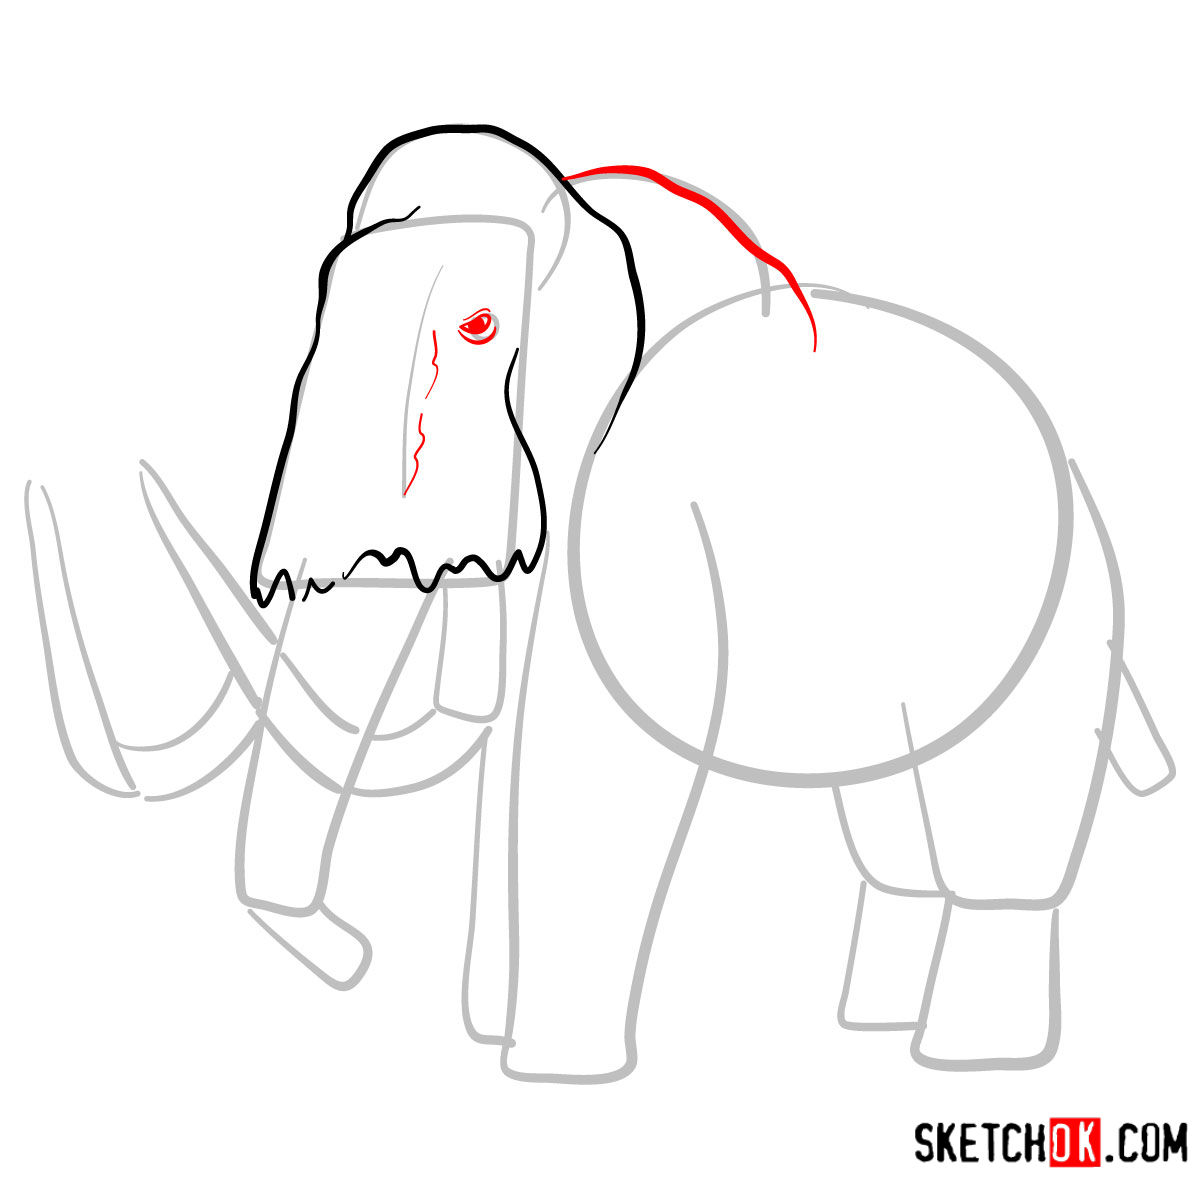 how to draw a woolly mammoth step by step woolly mammoth drawing at getdrawings free download step a by how step woolly to draw mammoth